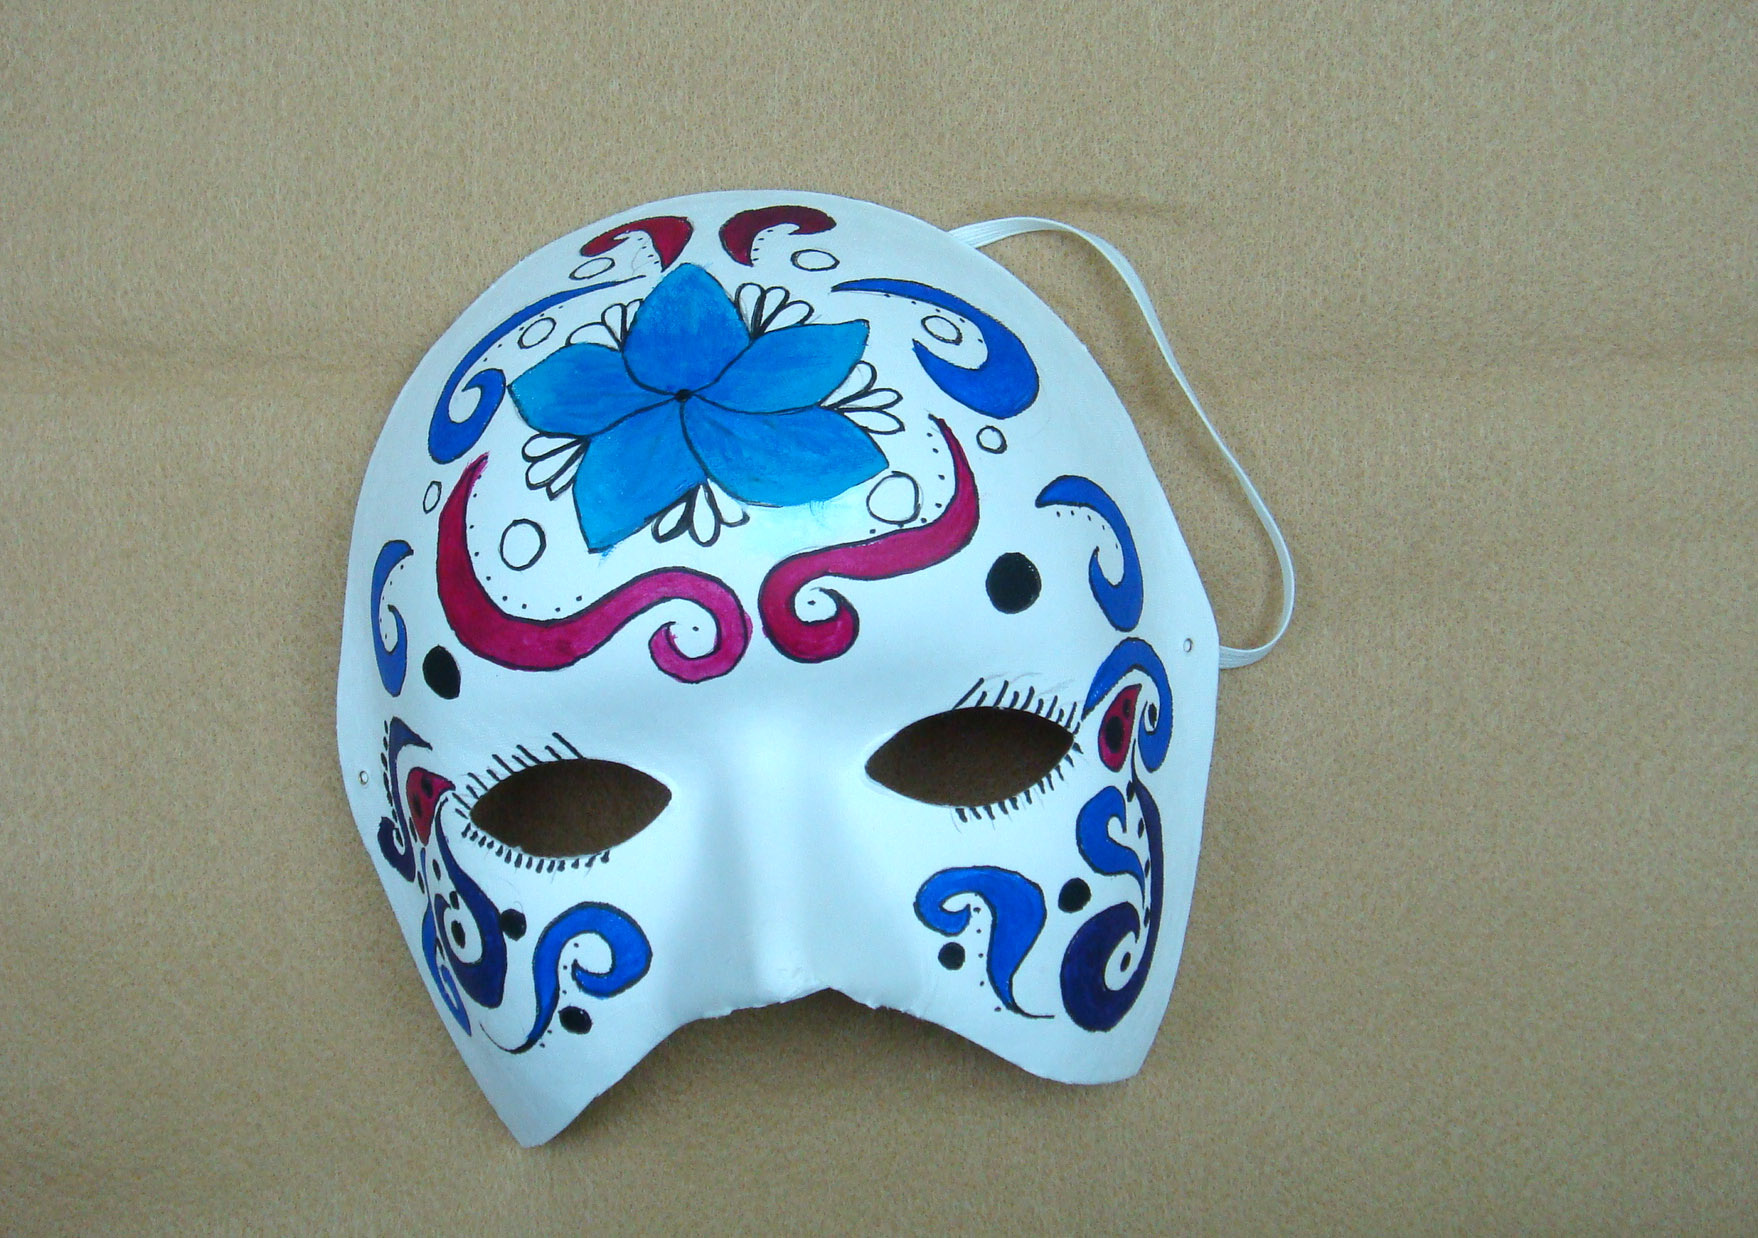 Role-play mask